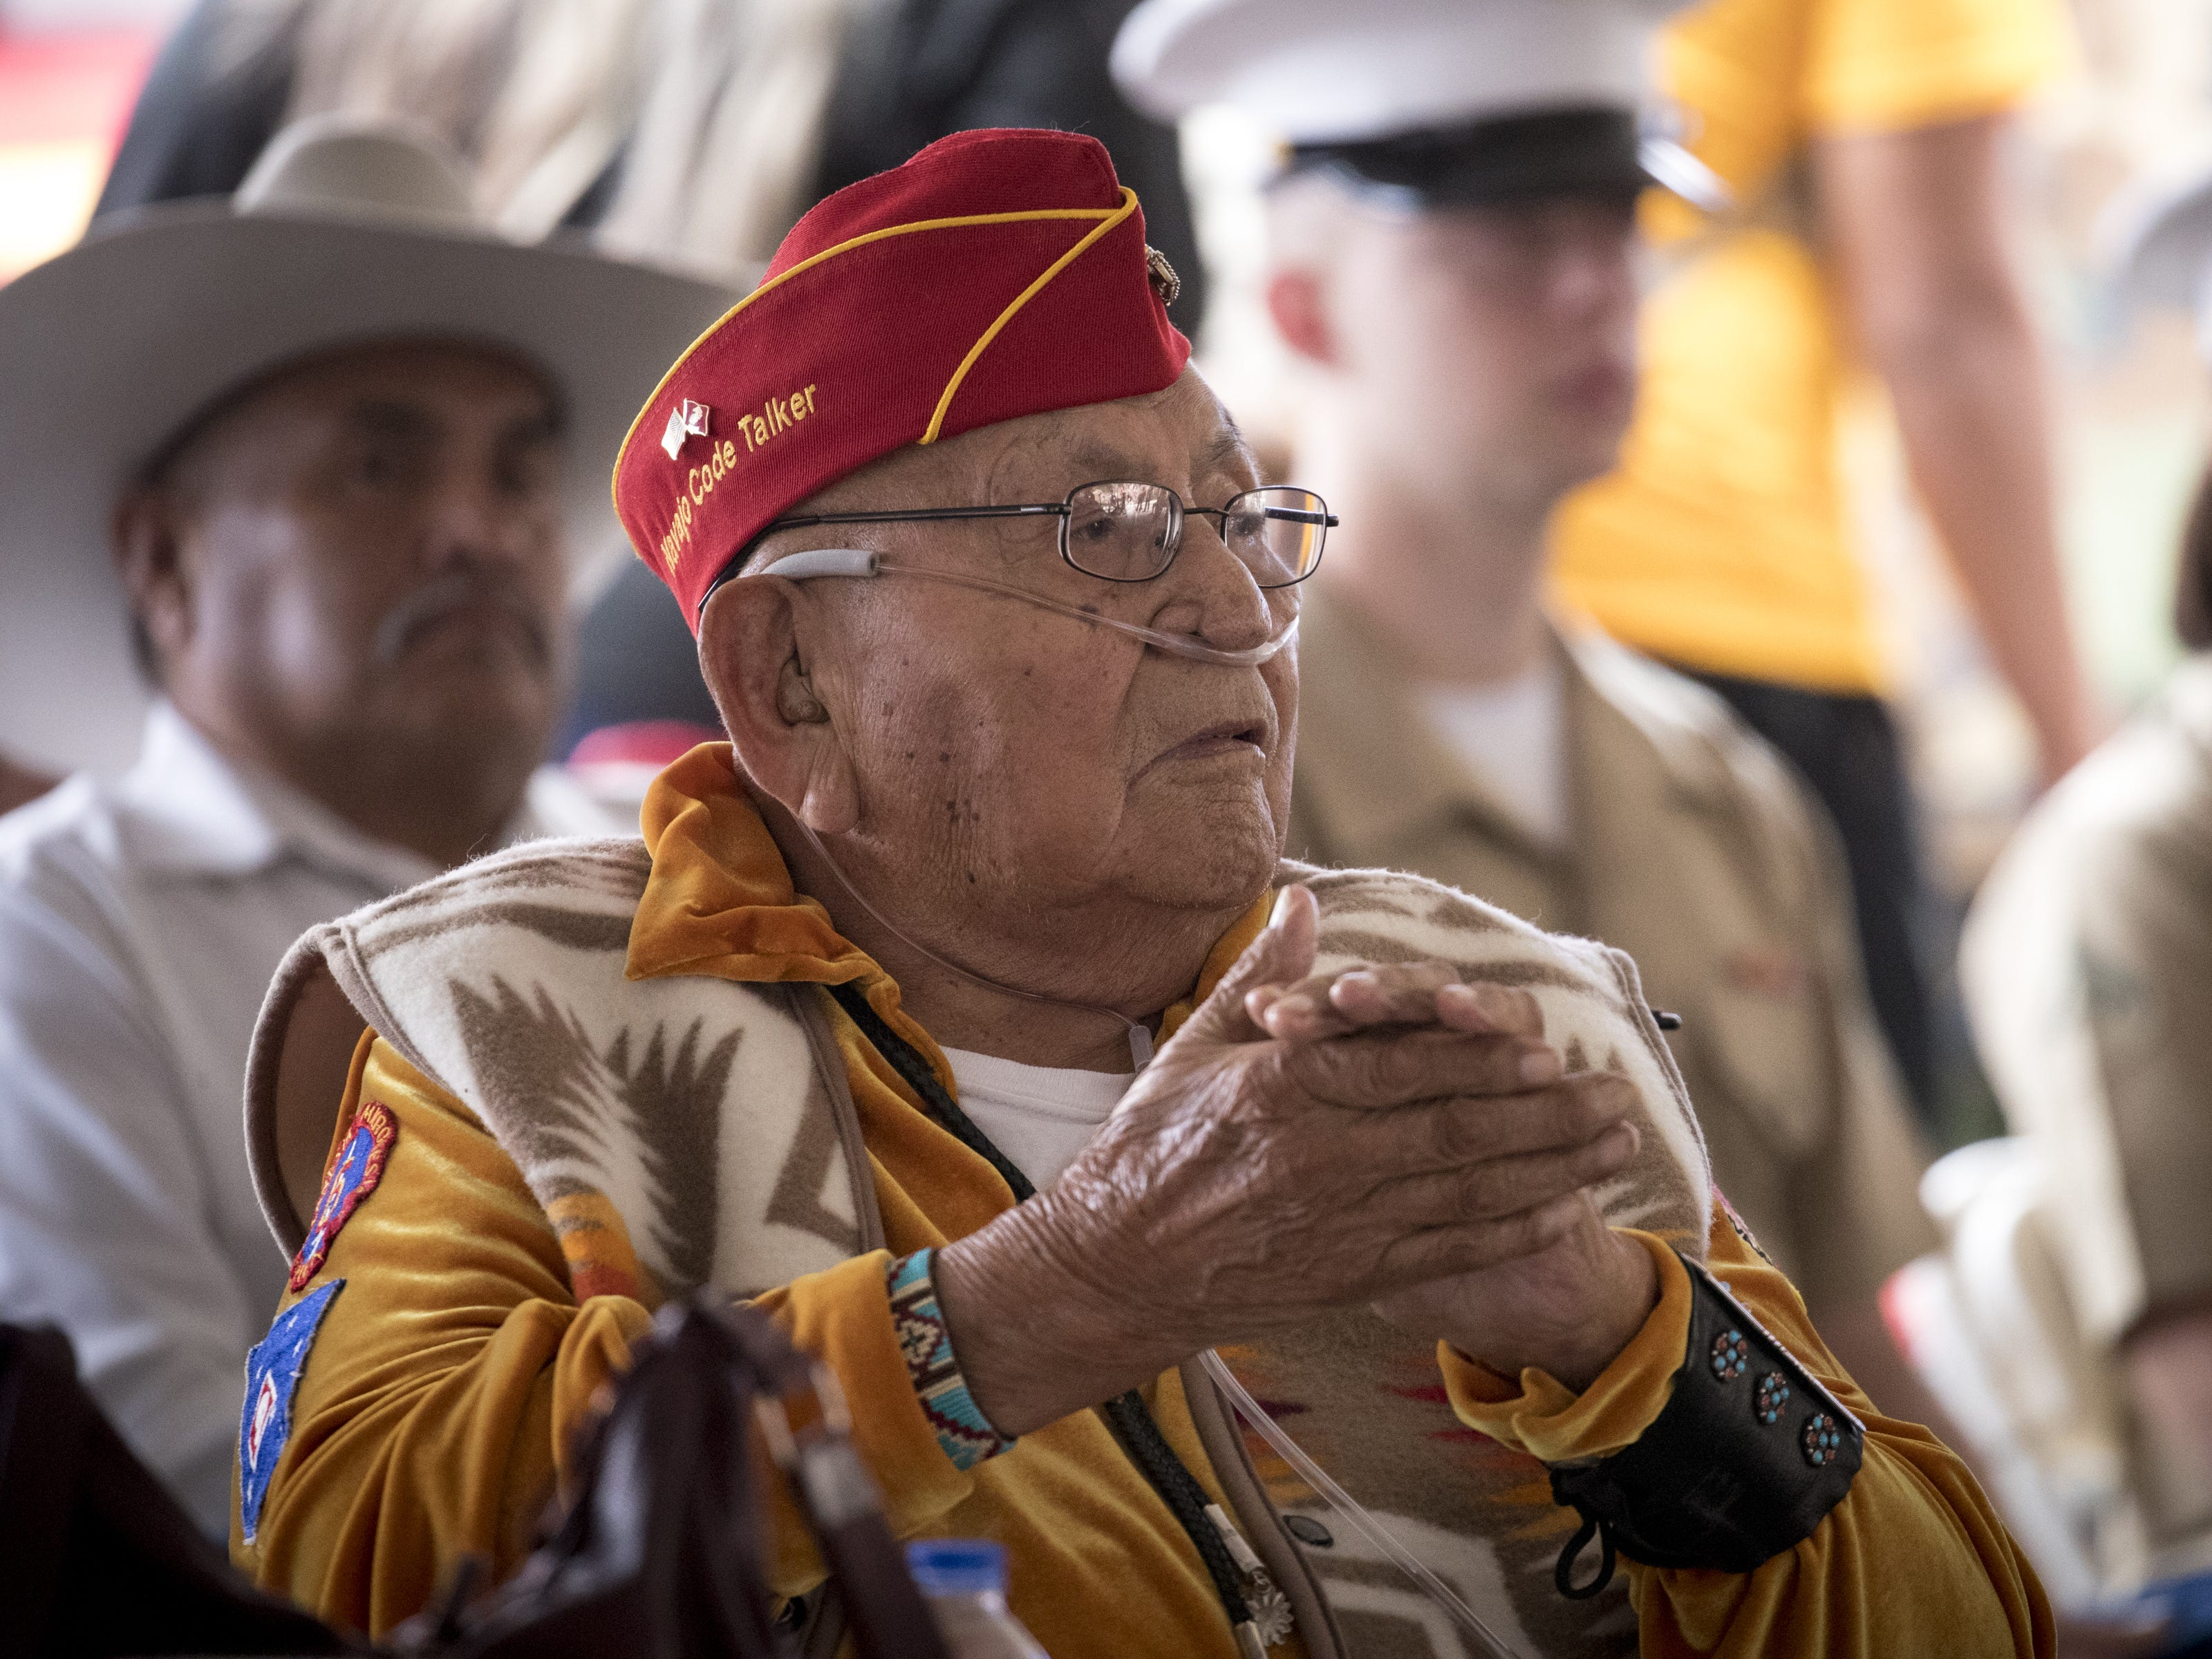 Navajo Code Talker Joe Vandever, Sr. listens during the Navajo Nation Code Talkers Day ceremony on Aug. 14, 2018, at the Veterans Memorial Park in Window Rock.